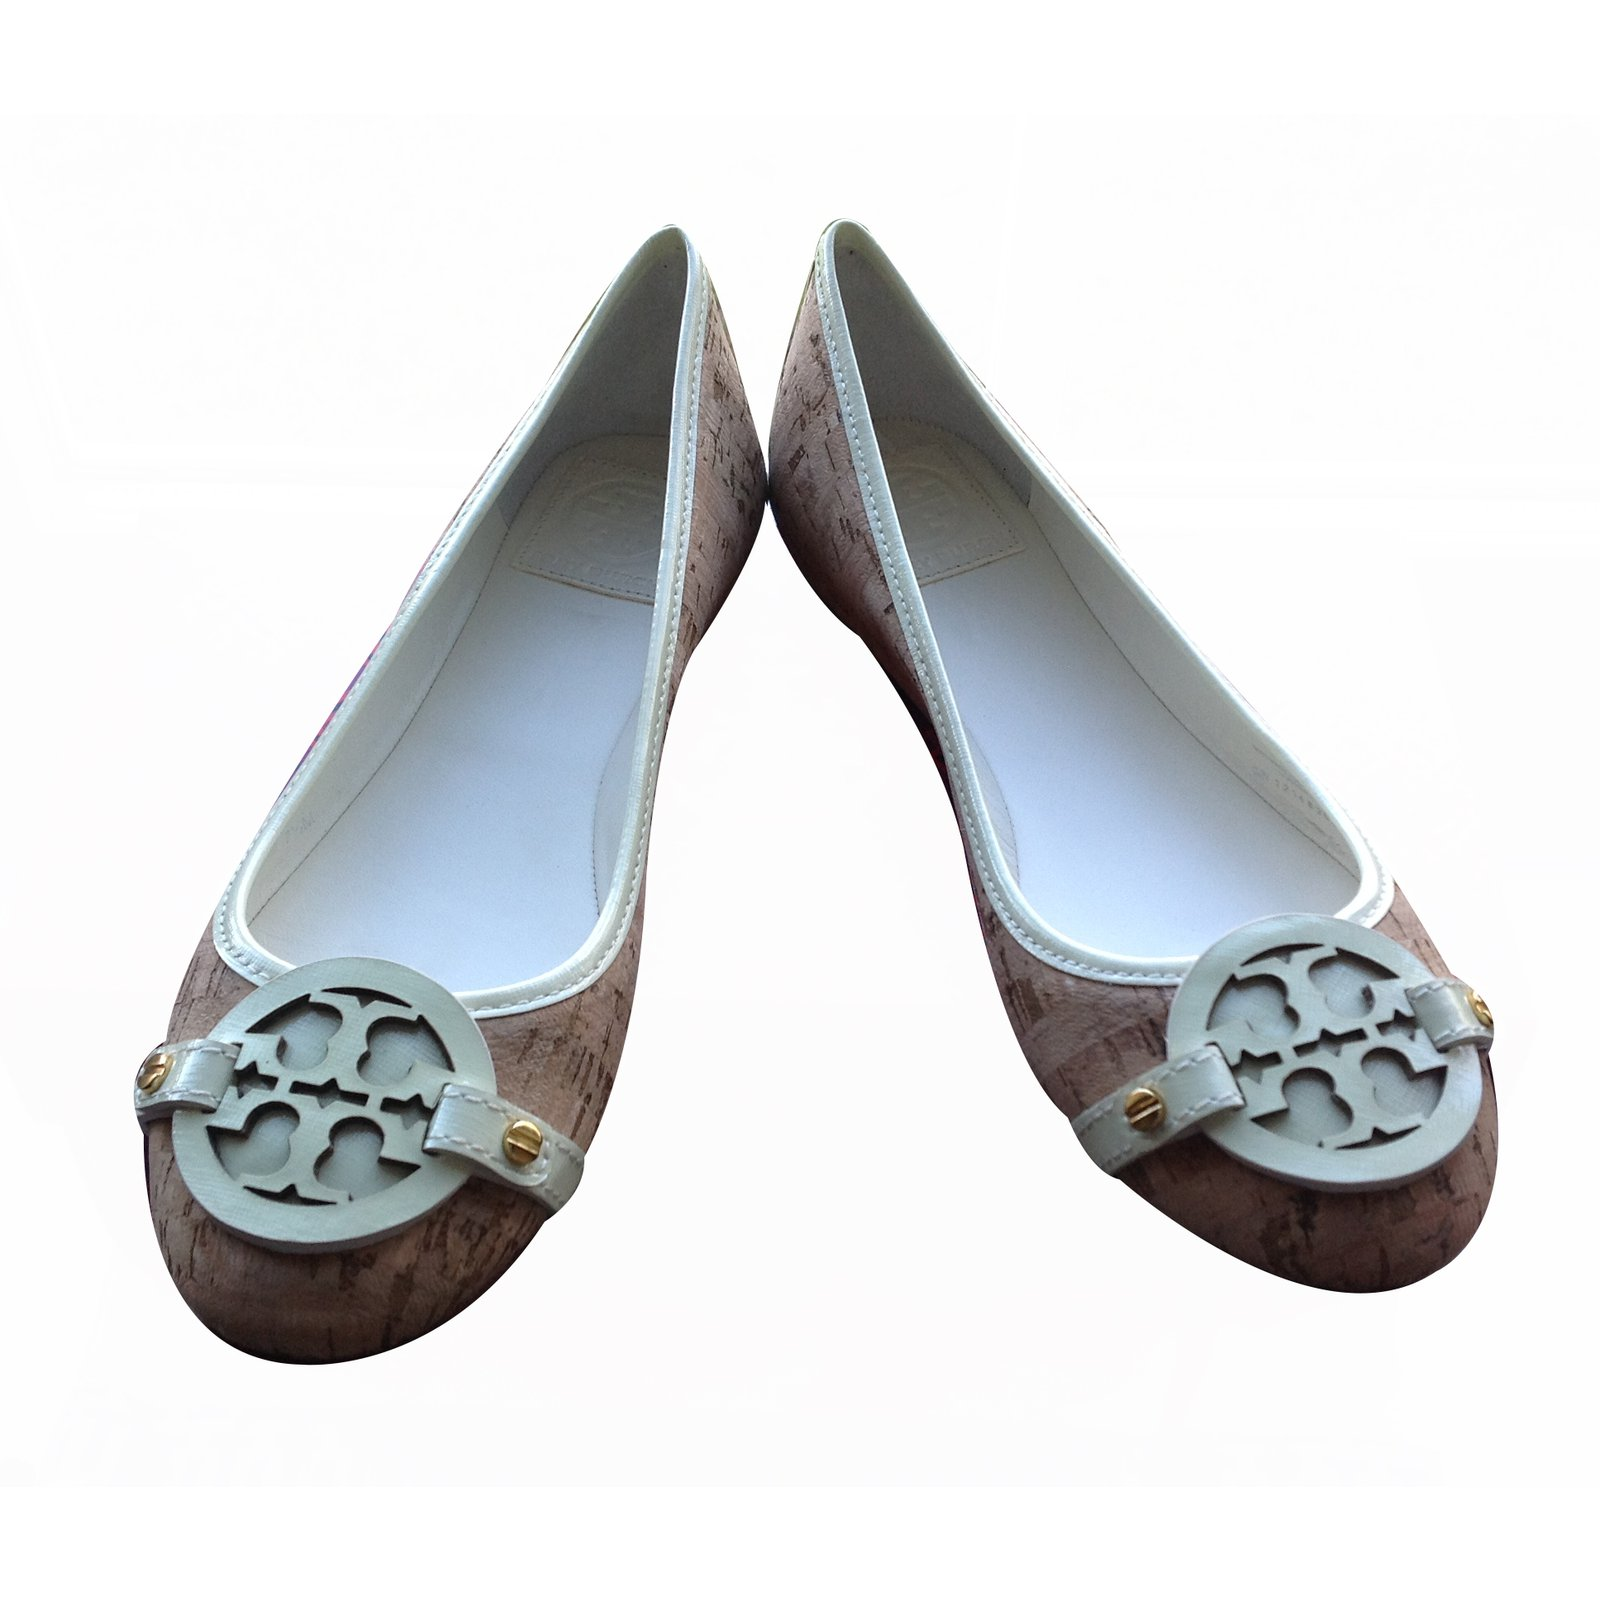 d1493c0bb22 Tory Burch Aaden Ballet cork natural ivory Ballet flats Leather Multiple  colors ref.20577